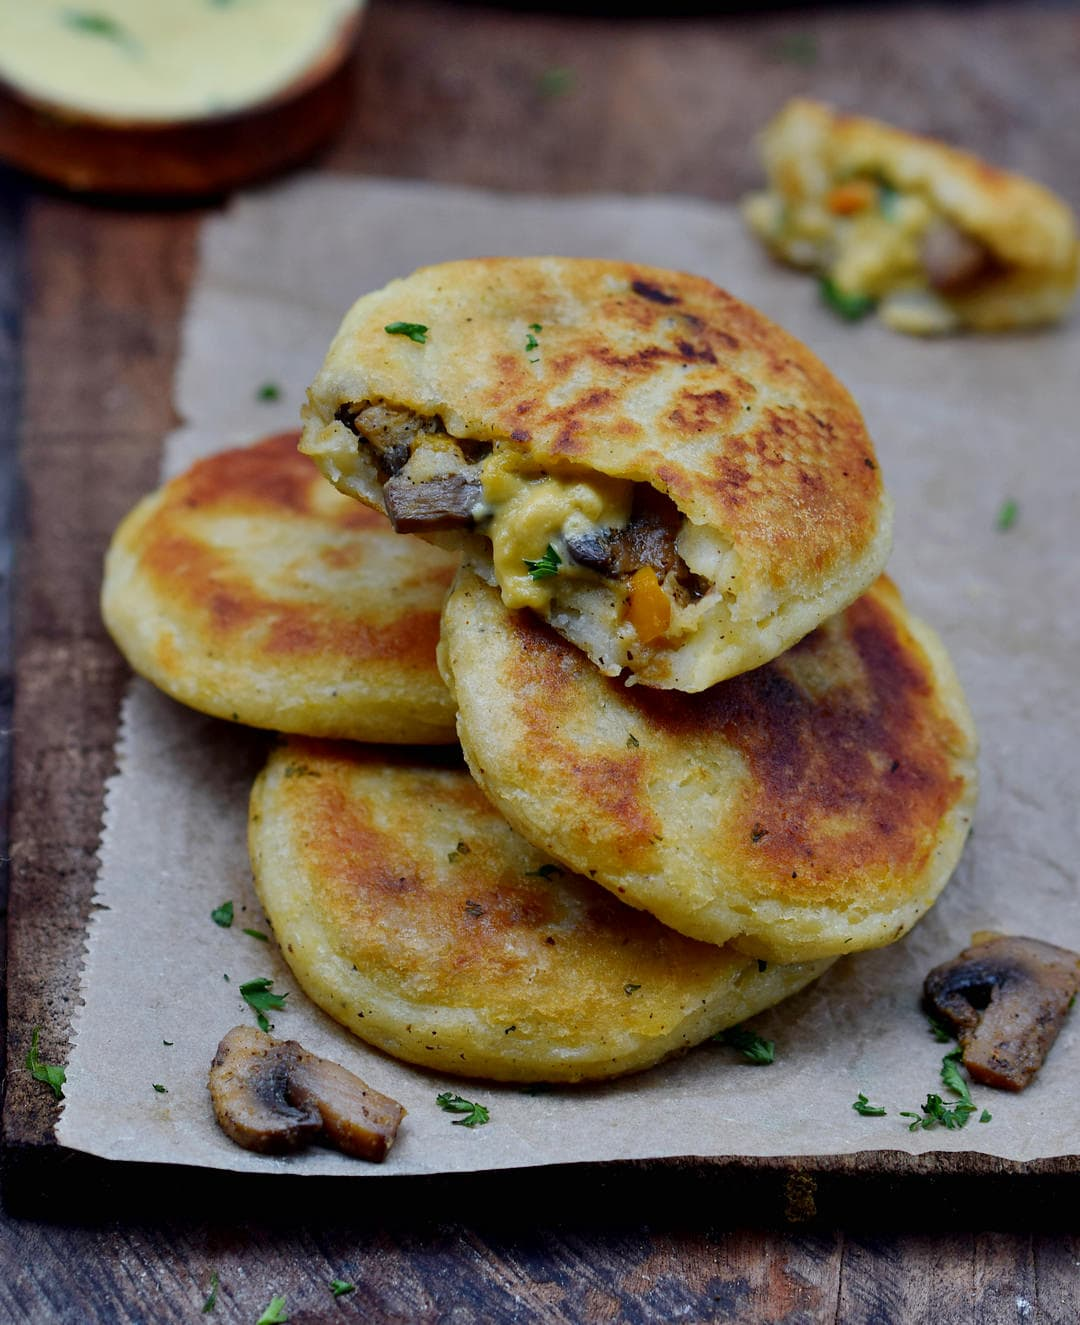 Mushroom stuffed potato cakes with vegan cheese sauce